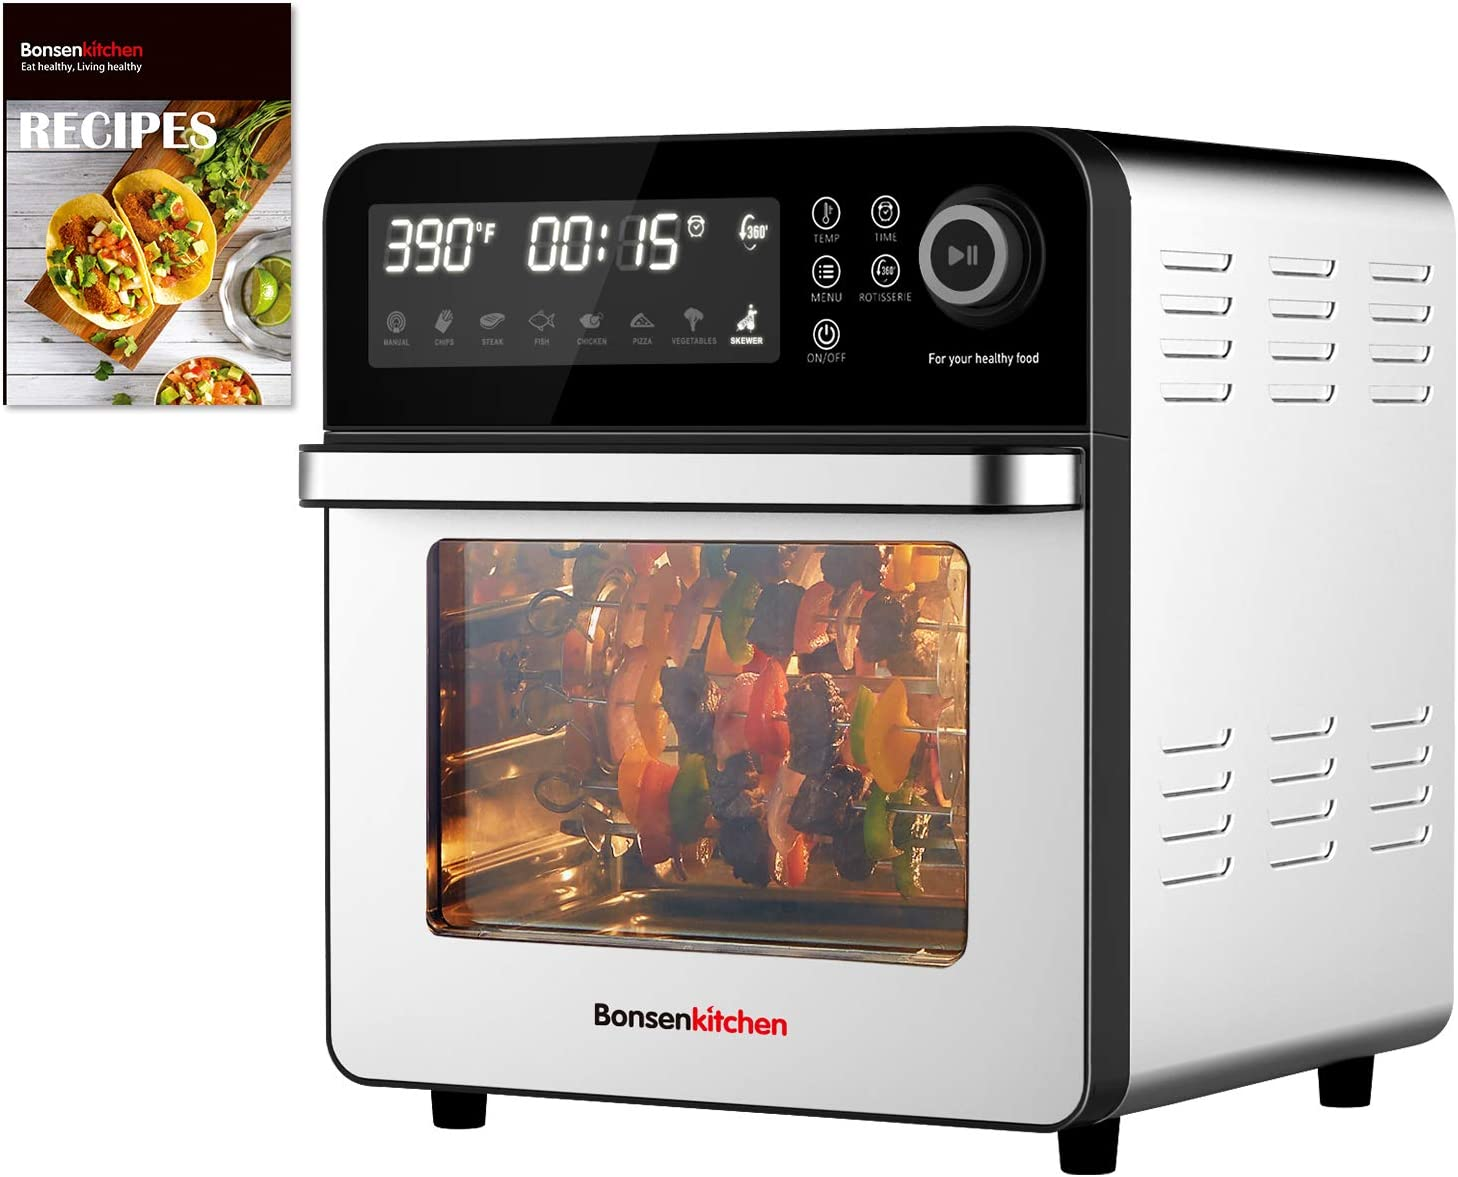 Air Fryer Toaster Oven, 1600W 8-IN-1 Air Fryer Oven, 15.3QT Bonsenkitchen Convection Roaster with Rotisserie & Dehydrator, Intelligent LED Touch Screen&7 Presets, 50 Recipes & 8 Extra Oven Accessory